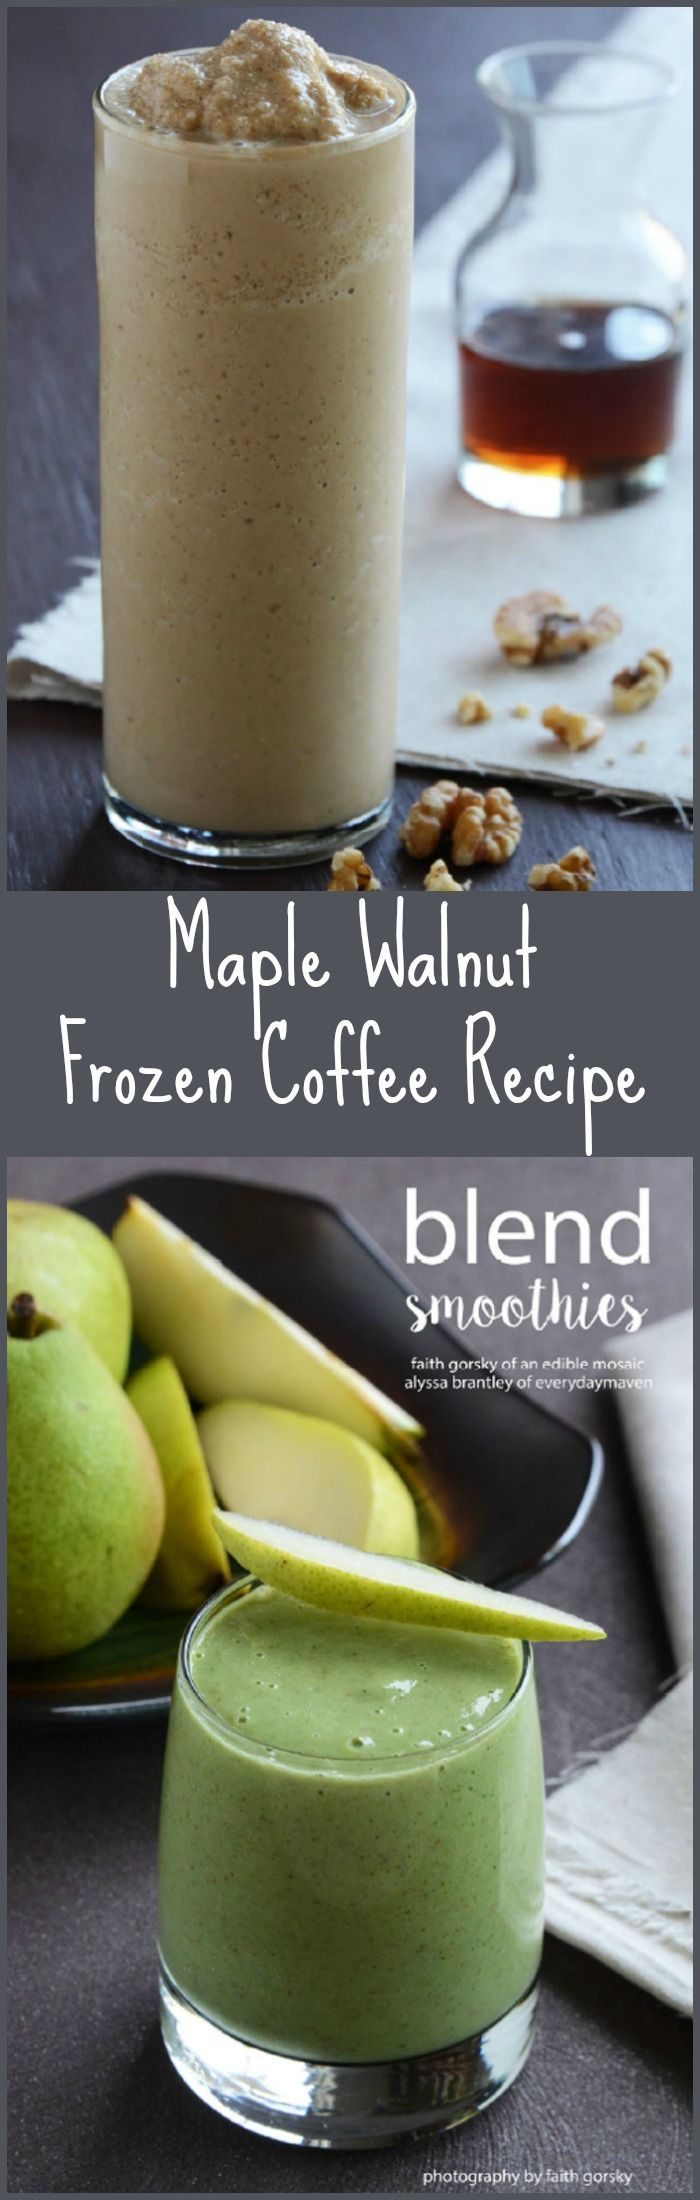 You have to try this Vegan Maple Walnut Blended Coffee from the Blended Smoothies ebook. The drink and the ebook are awesome!